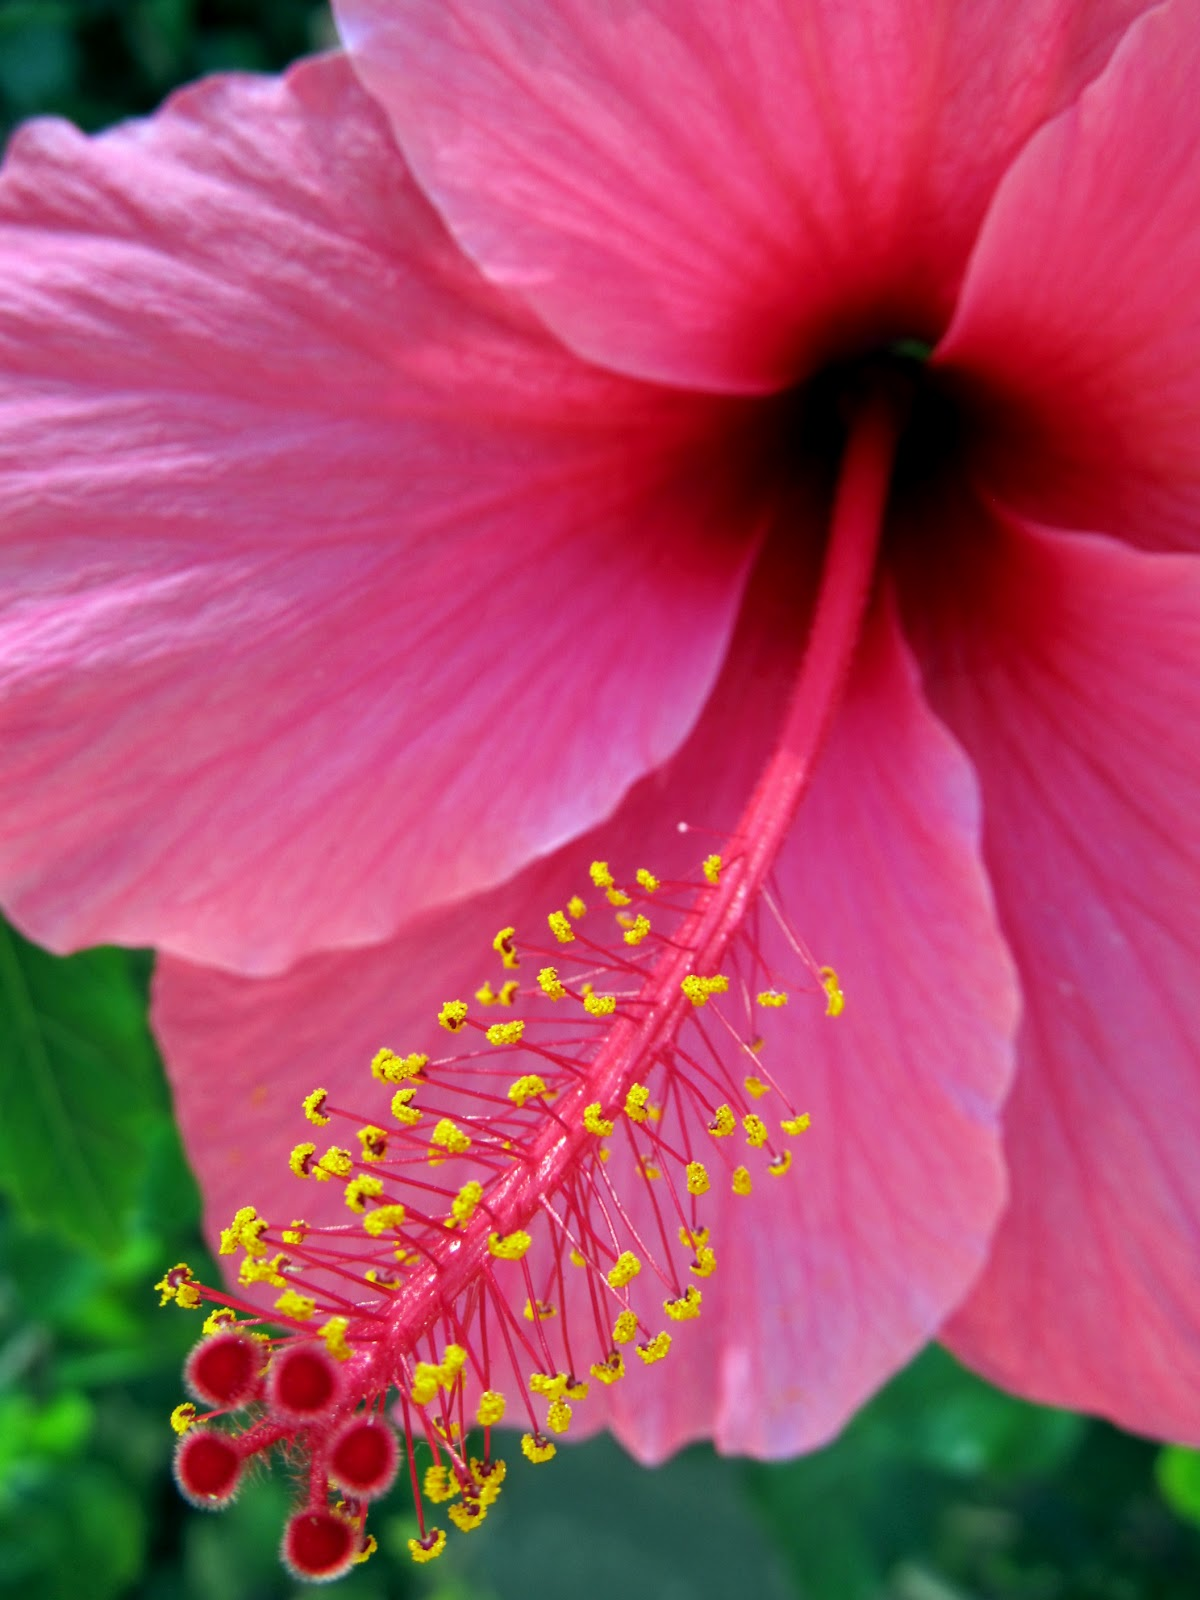 Hawaiian Plants And Flowers: Life With Dylan: Happy World Photography Day